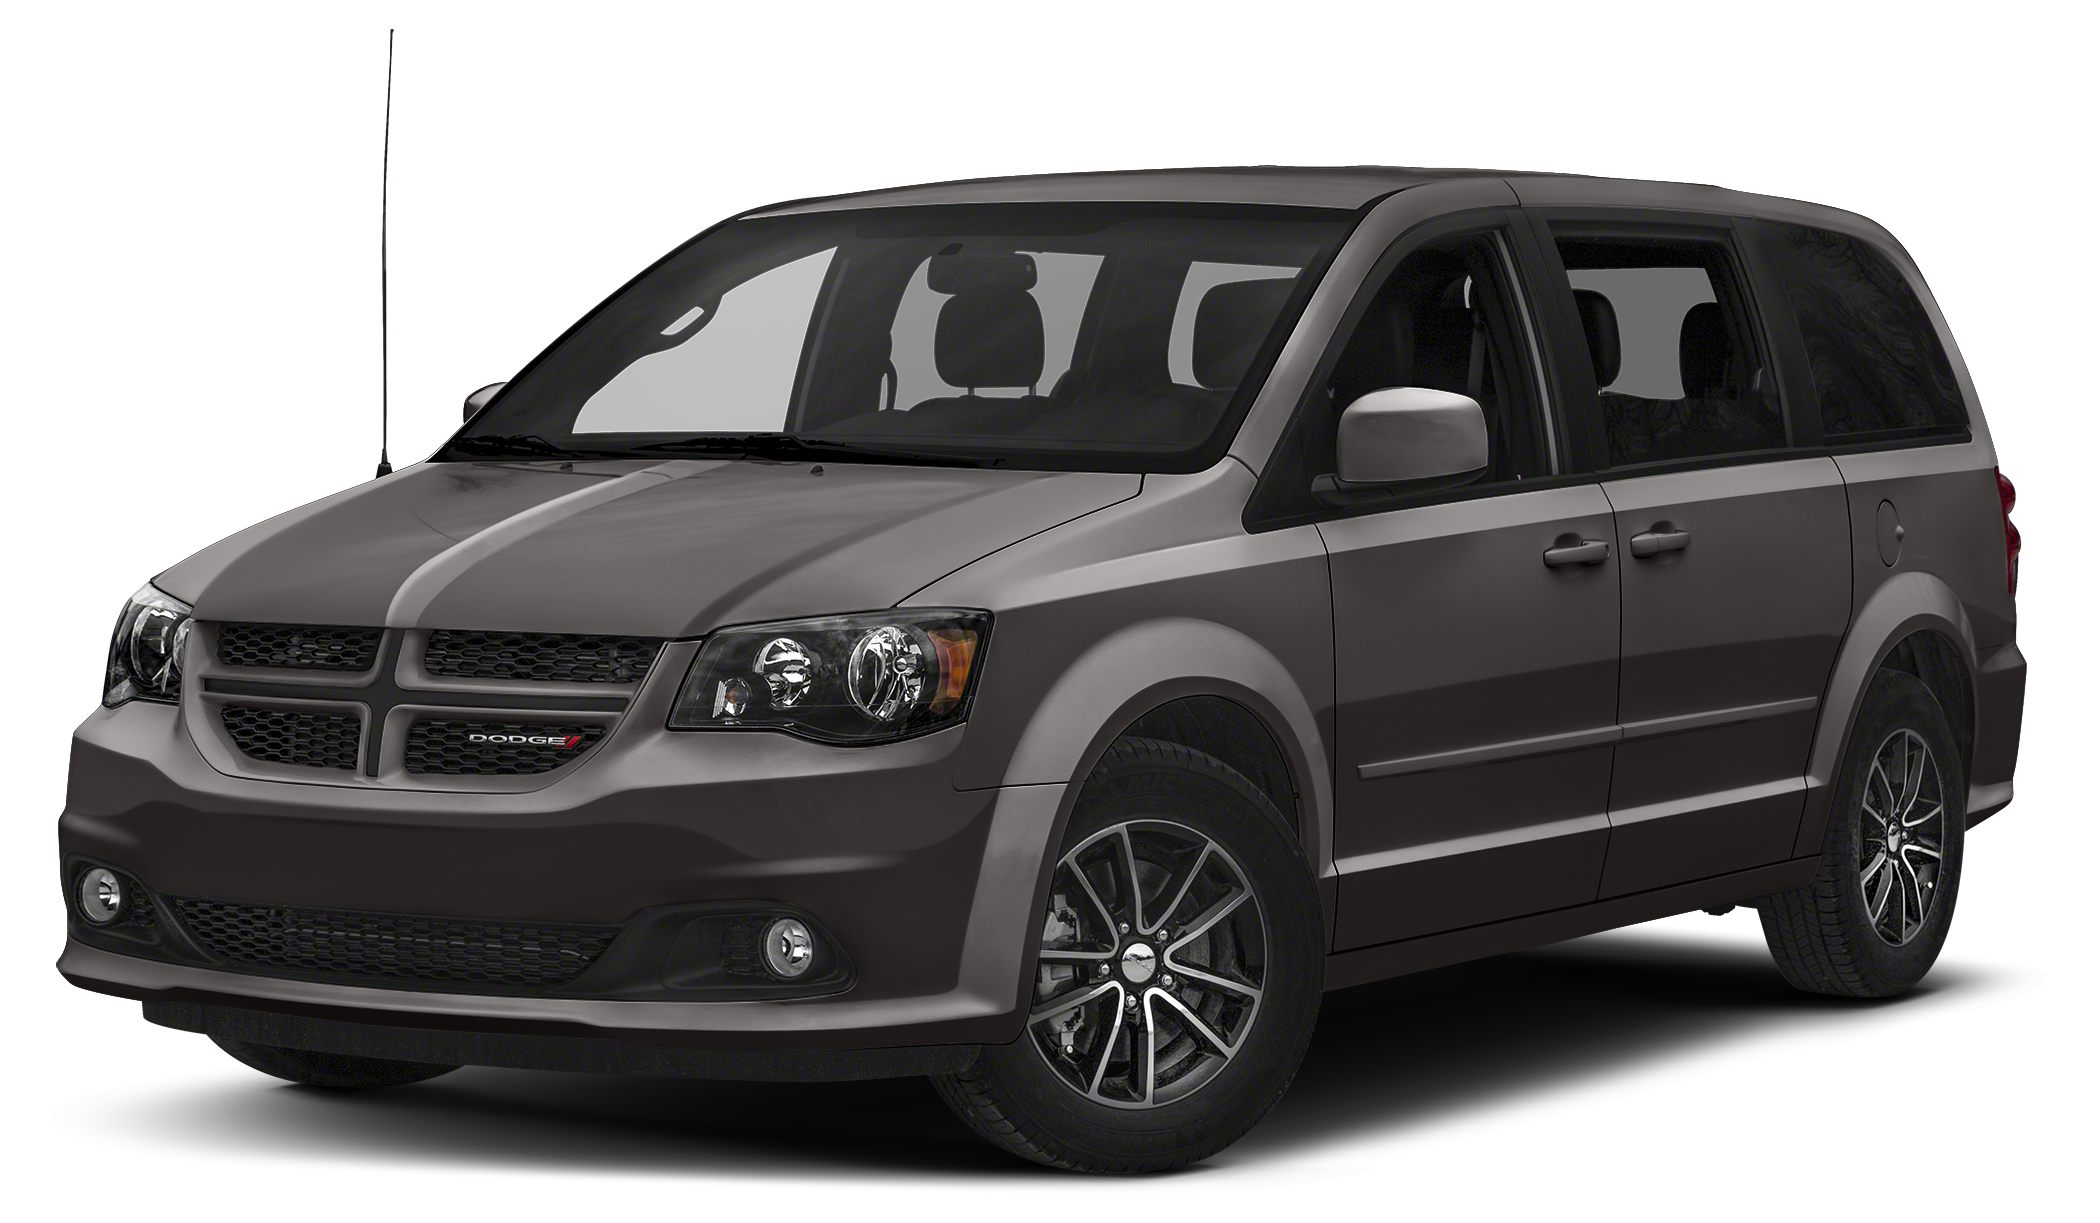 2017 Dodge Grand Caravan GT This 2017 Dodge Grand Caravan GT is offered to you for sale by Bay Lin